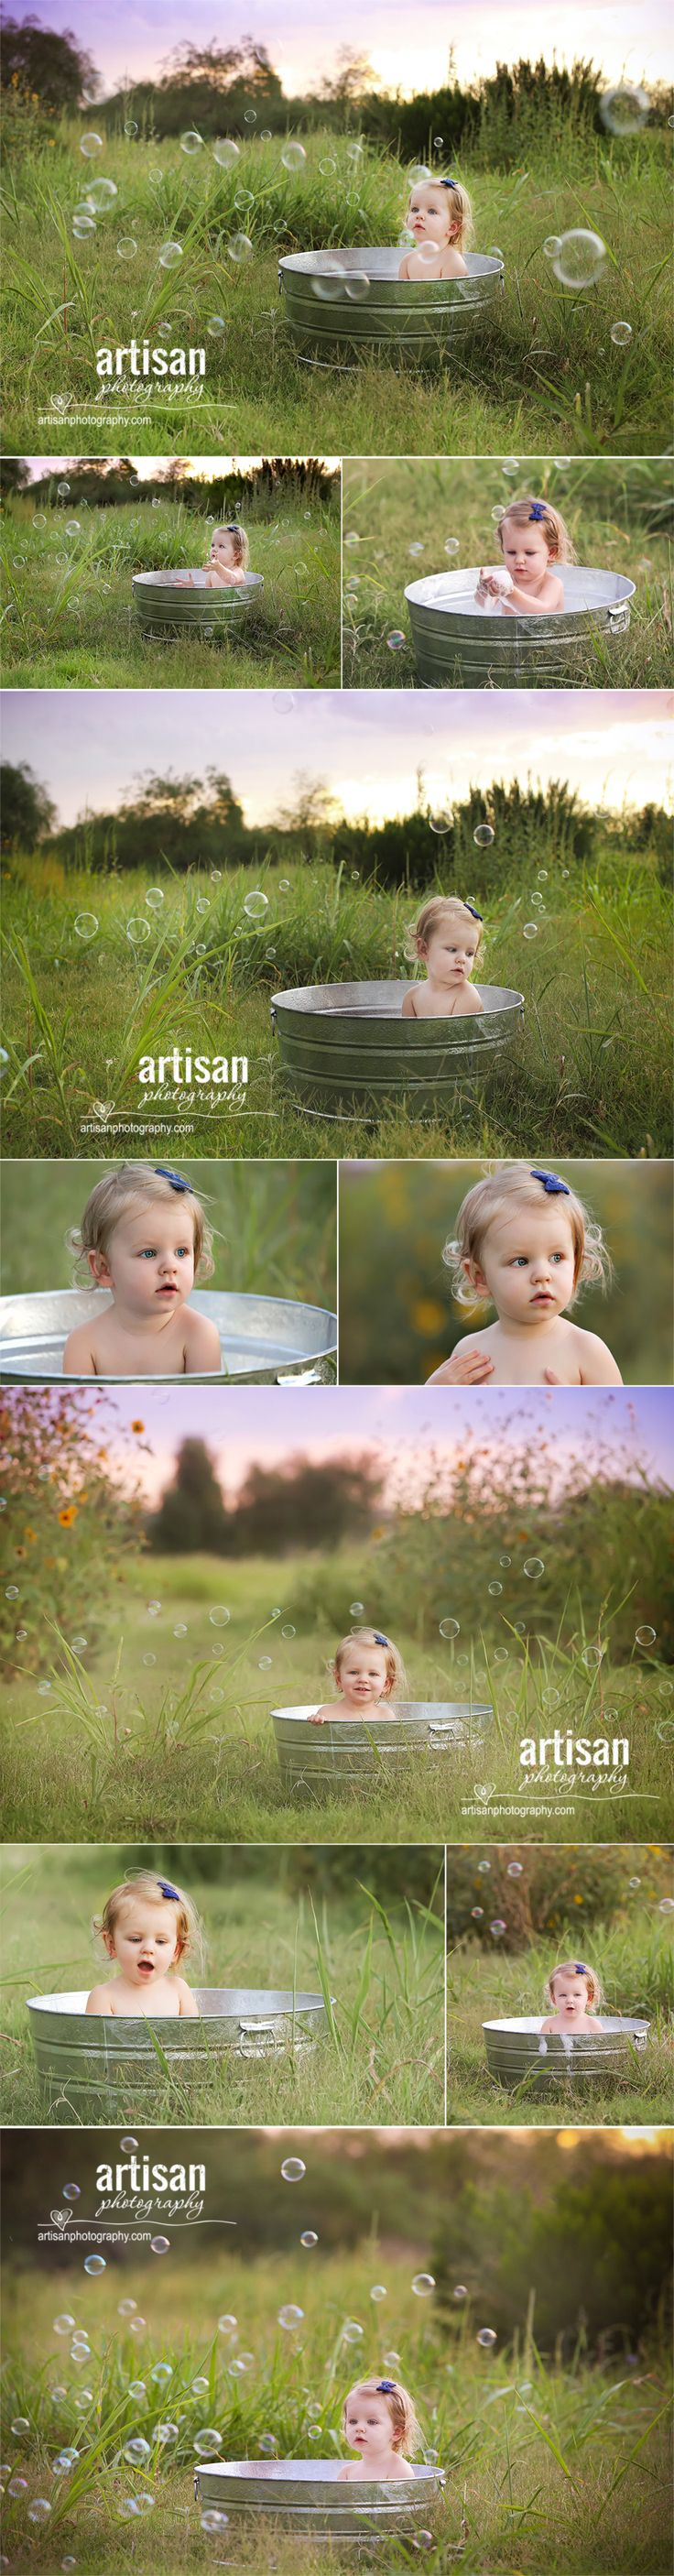 ArtisanPhotography.com bubble bath photoshoot. Carlsbad family photographer. California.